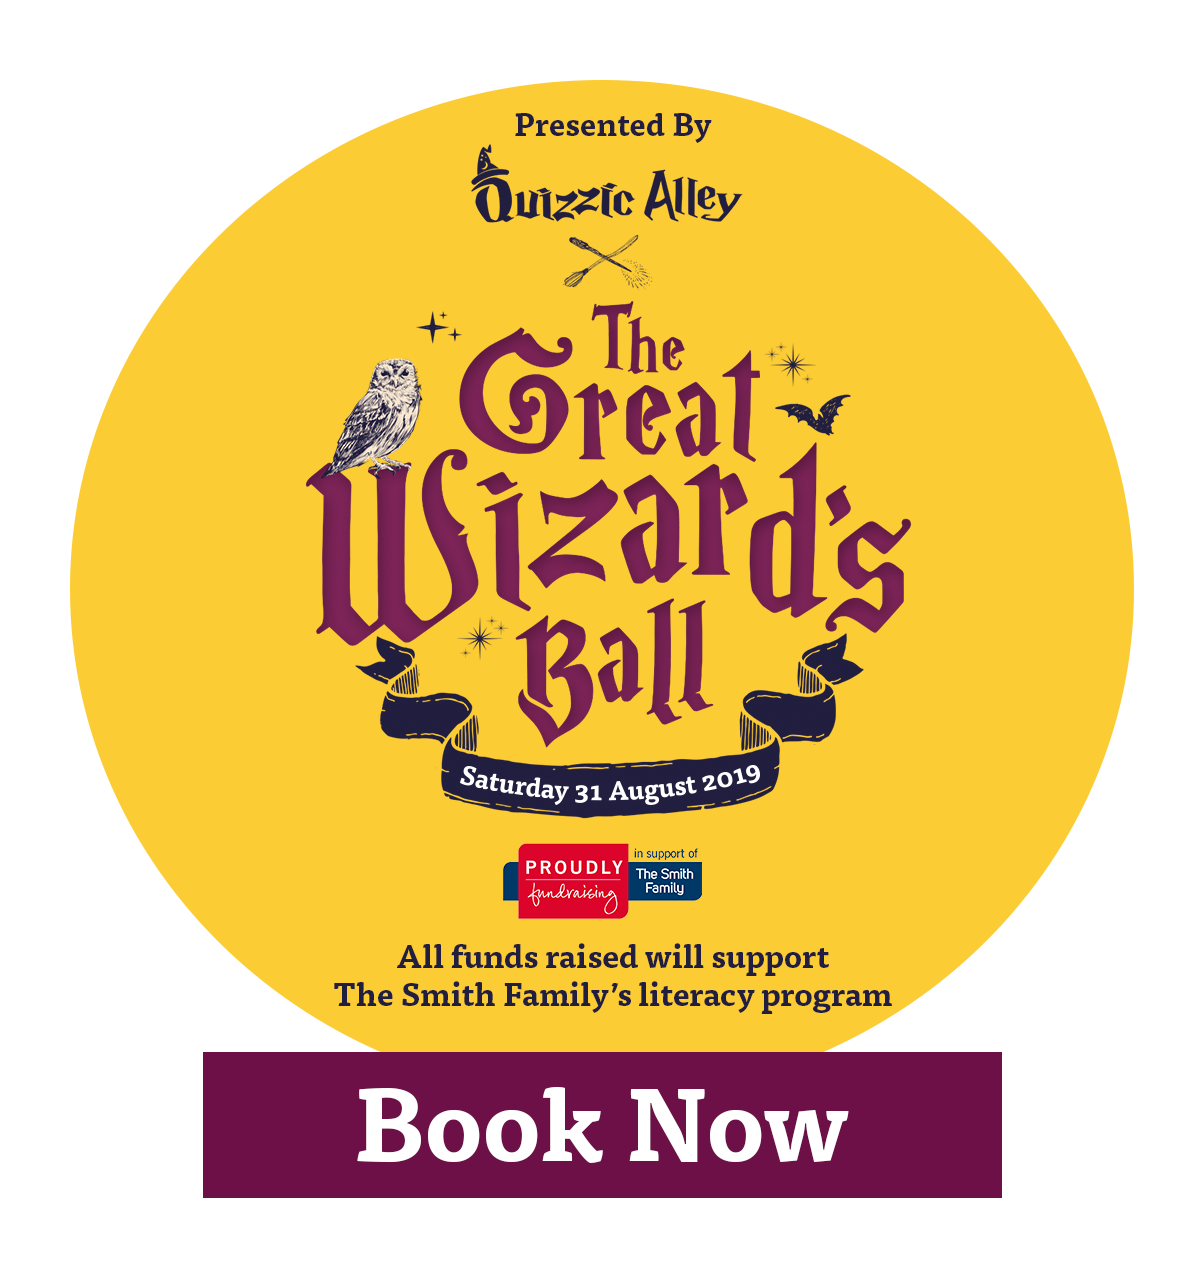 Quizzic Alley Wizards Ball, Saturday 31 August 2019.